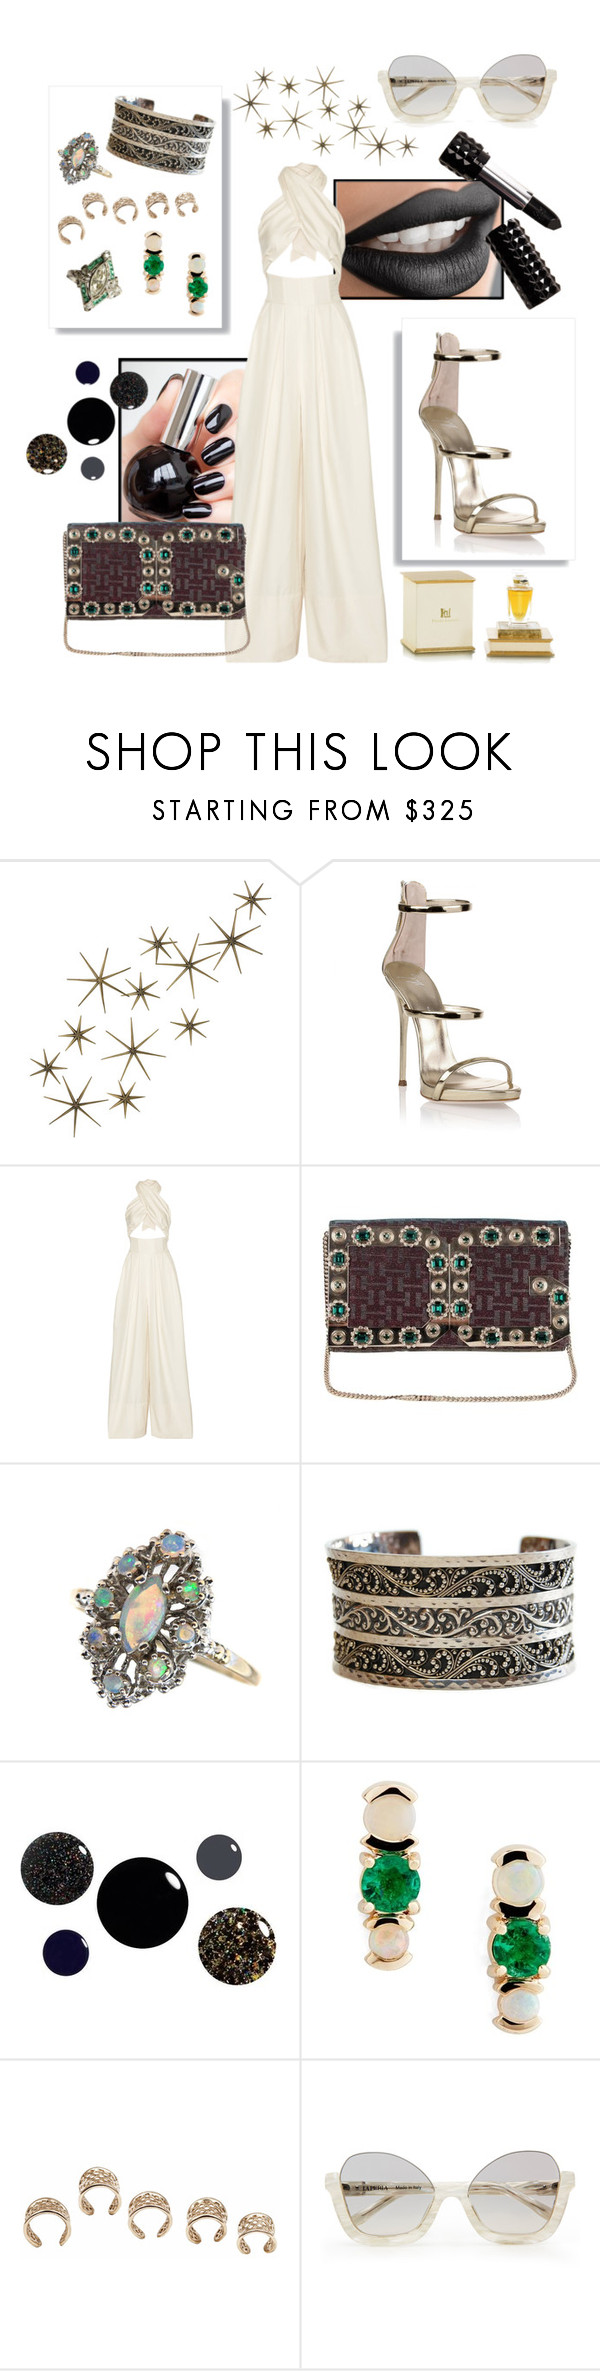 """""""Shine bright!"""" by jammin8 ❤ liked on Polyvore featuring Global Views, Giuseppe Zanotti, Rosie Assoulin, Dolce&Gabbana, Lois Hill, Kat Von D, Mociun, Bernard Delettrez and Henry Jacques"""